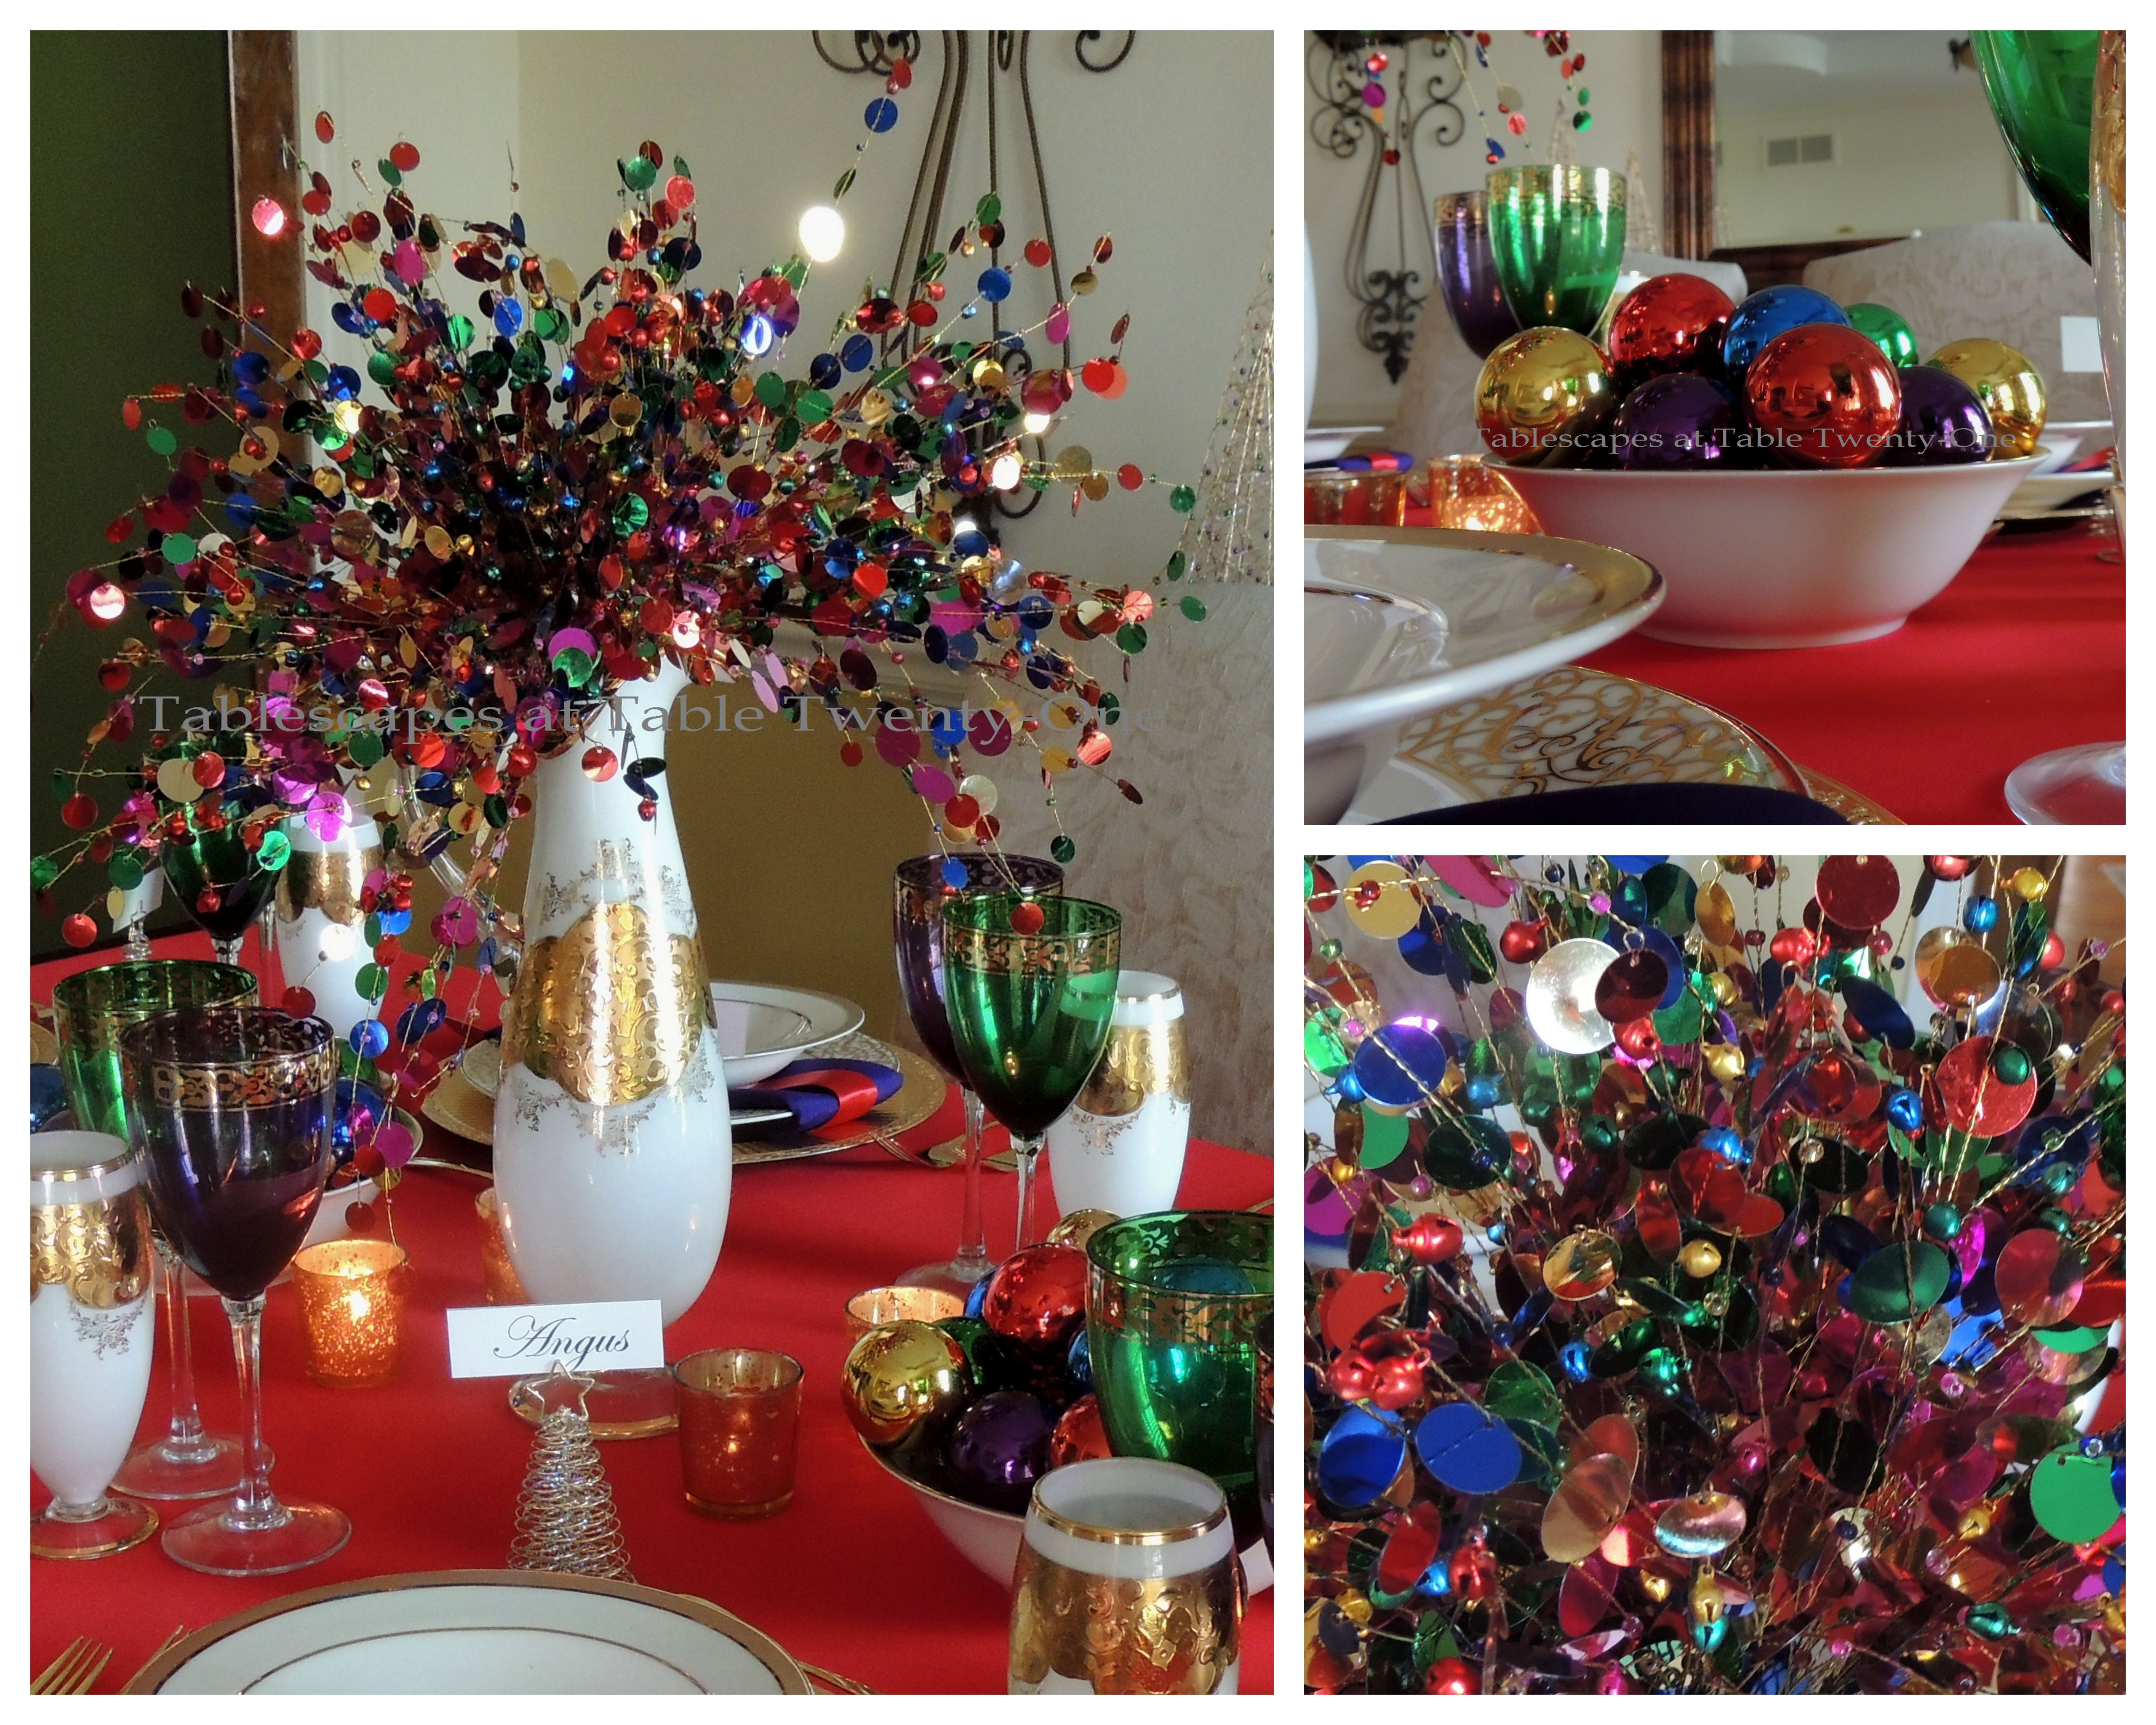 Tablescapes at Table Twenty-One, Merry & Bright Multi-Color Christmas: Centerpiece elements